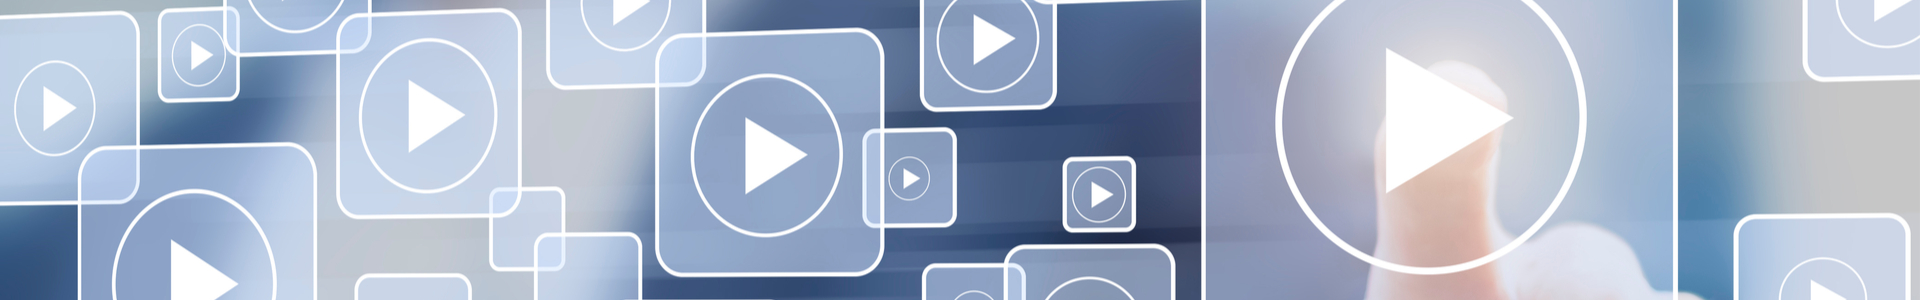 VIDEO PRESENTATION: Just do it. Or are we happy going round in circles?